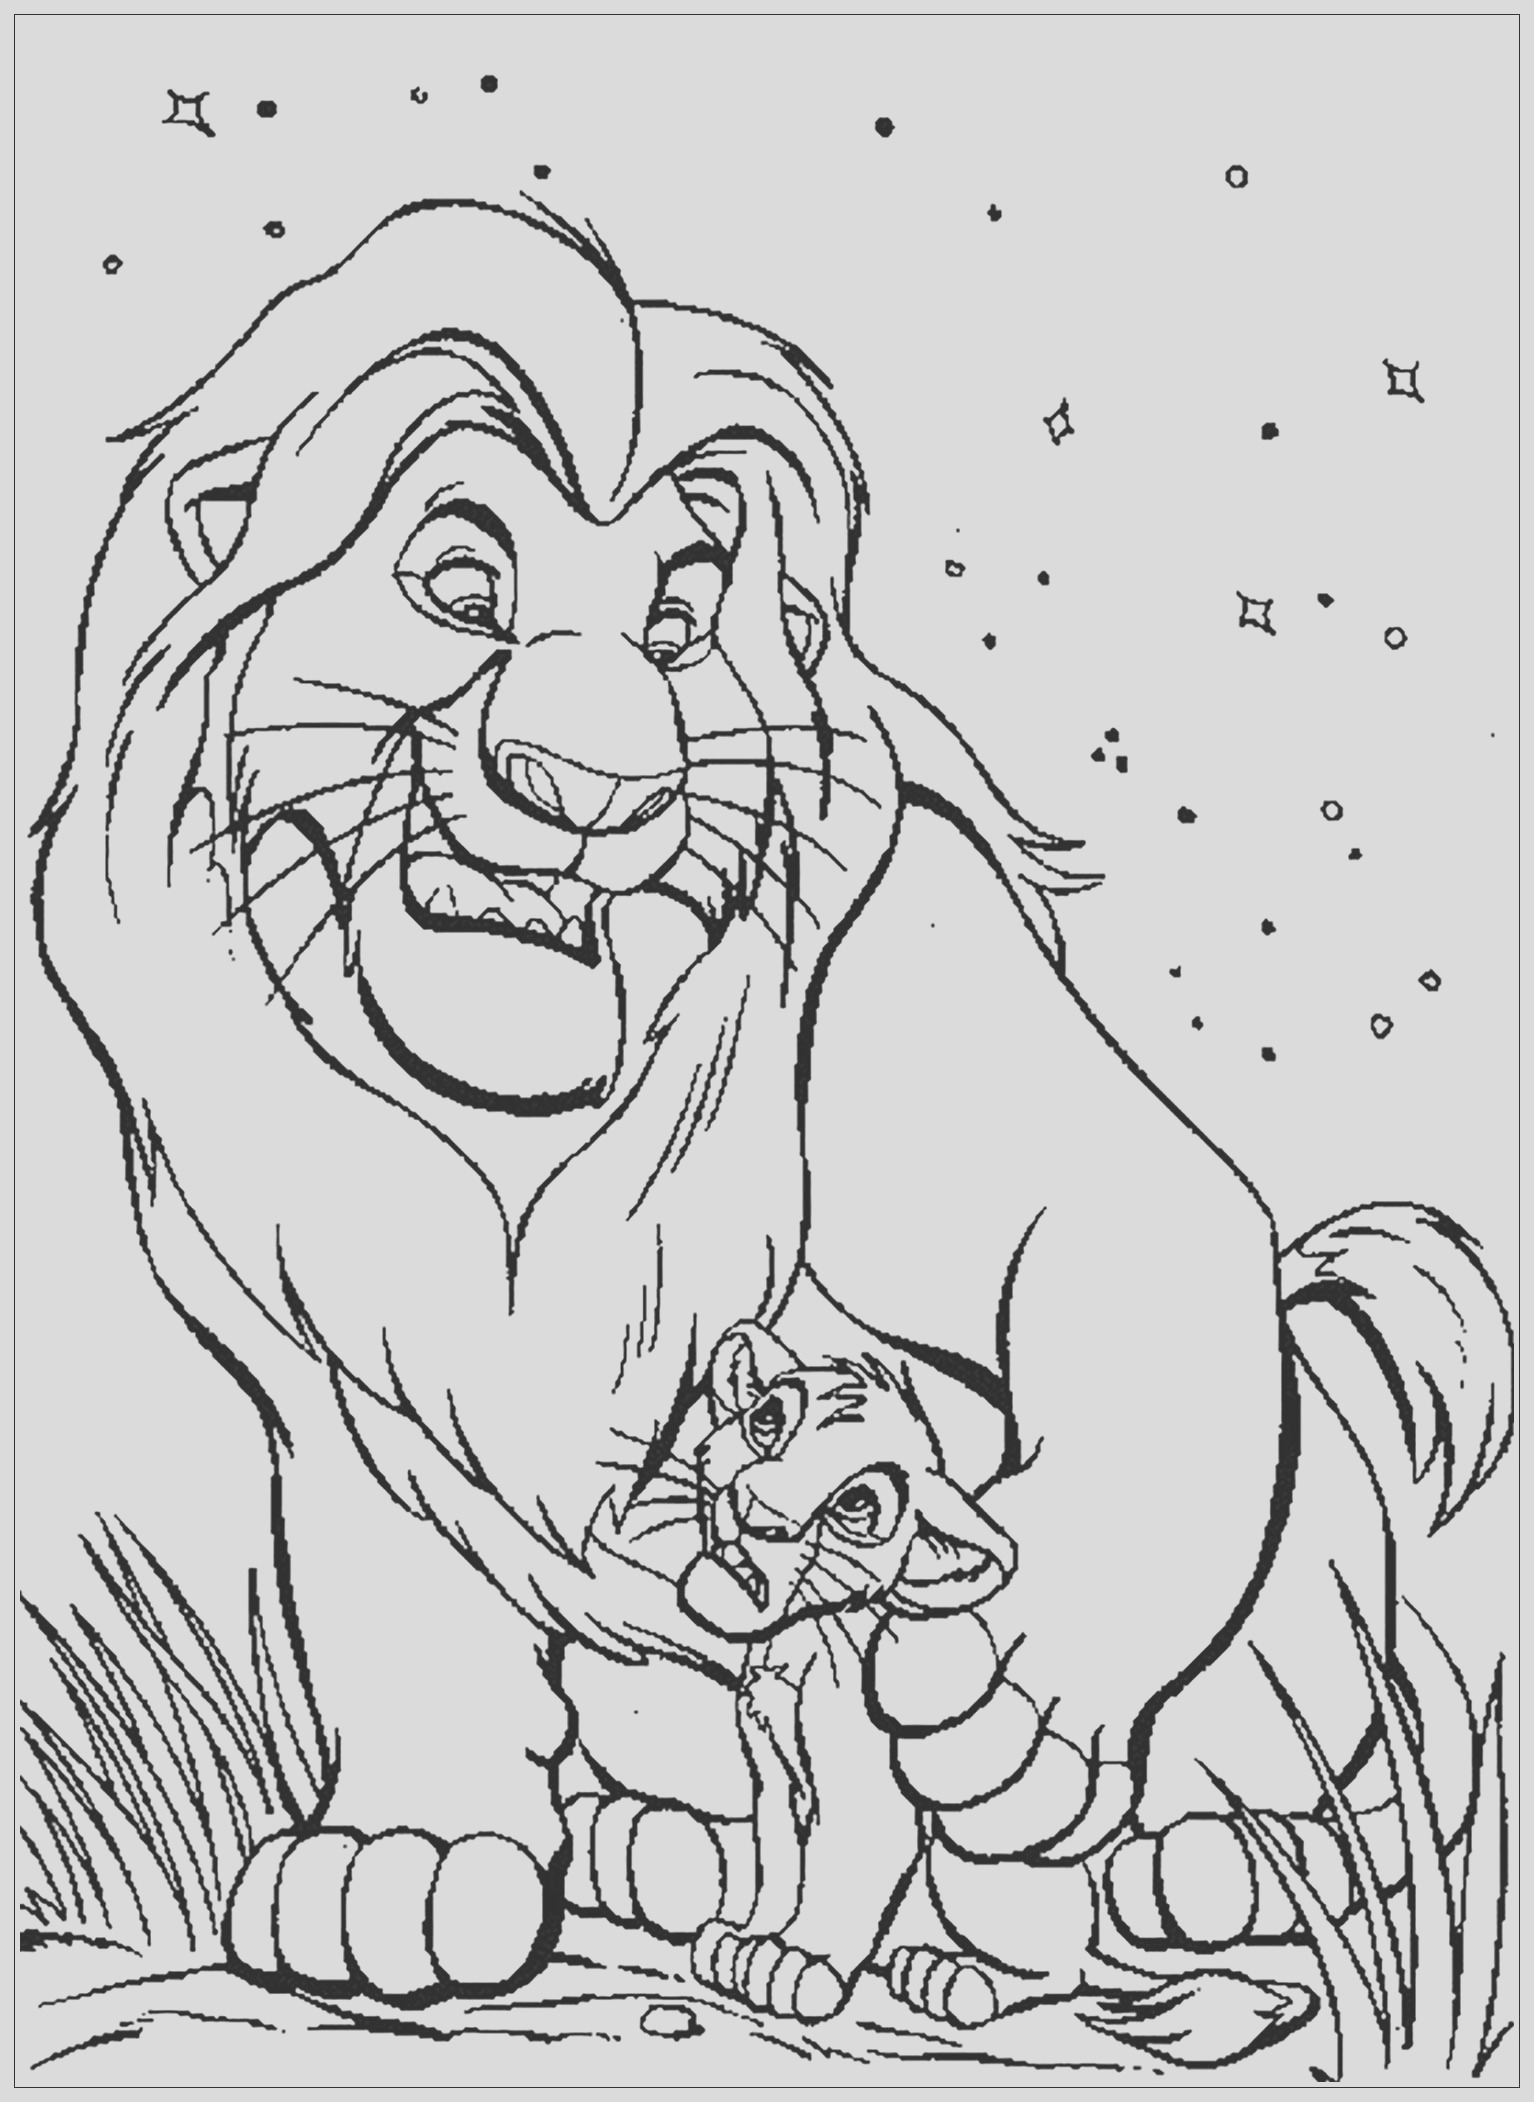 image=the lion king coloring pages for children the lion king 2834 1